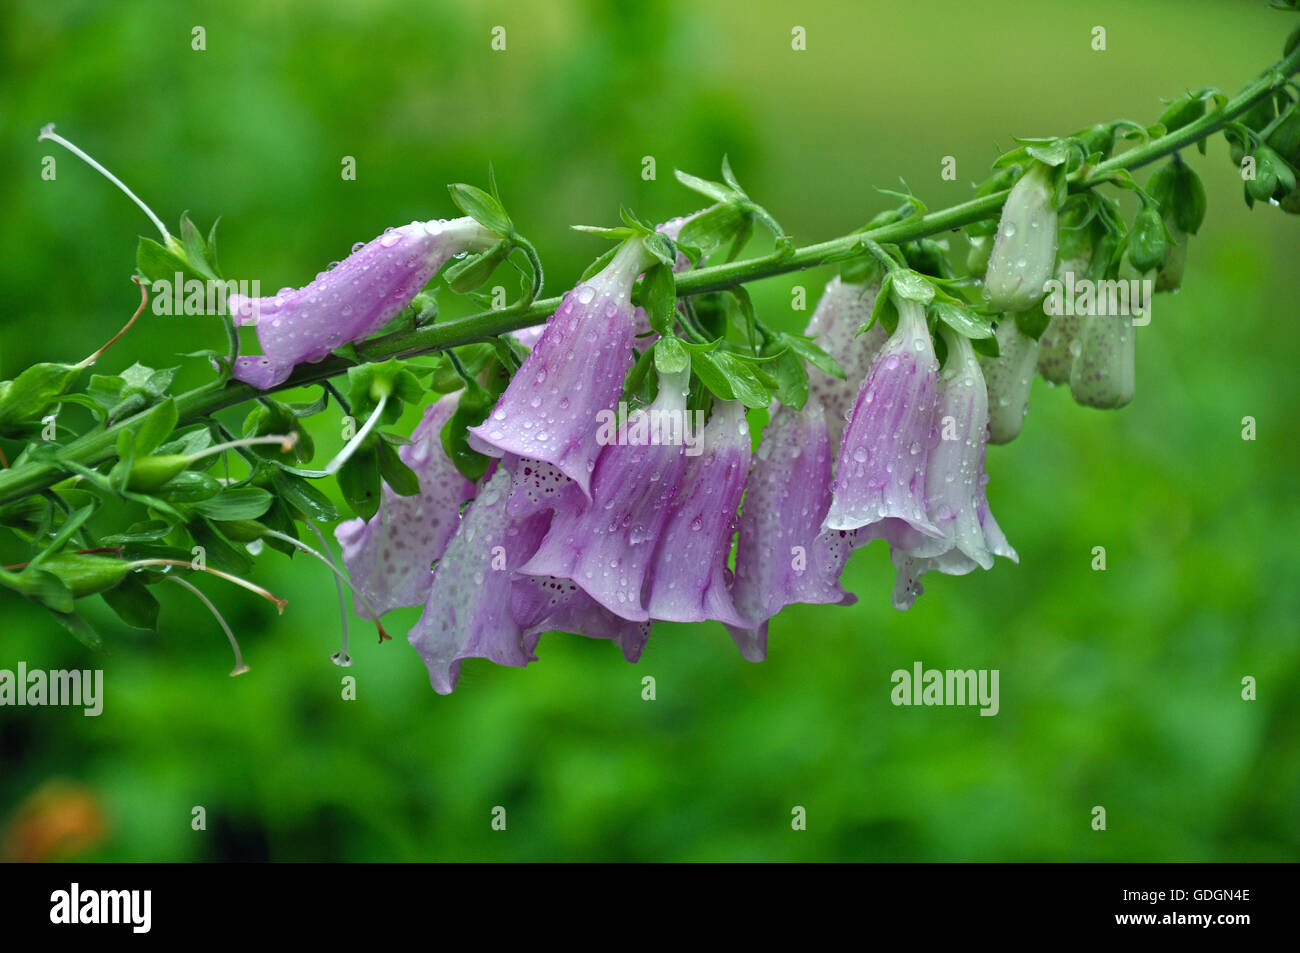 Flowers With Raindrops Stock Photos Flowers With Raindrops Stock